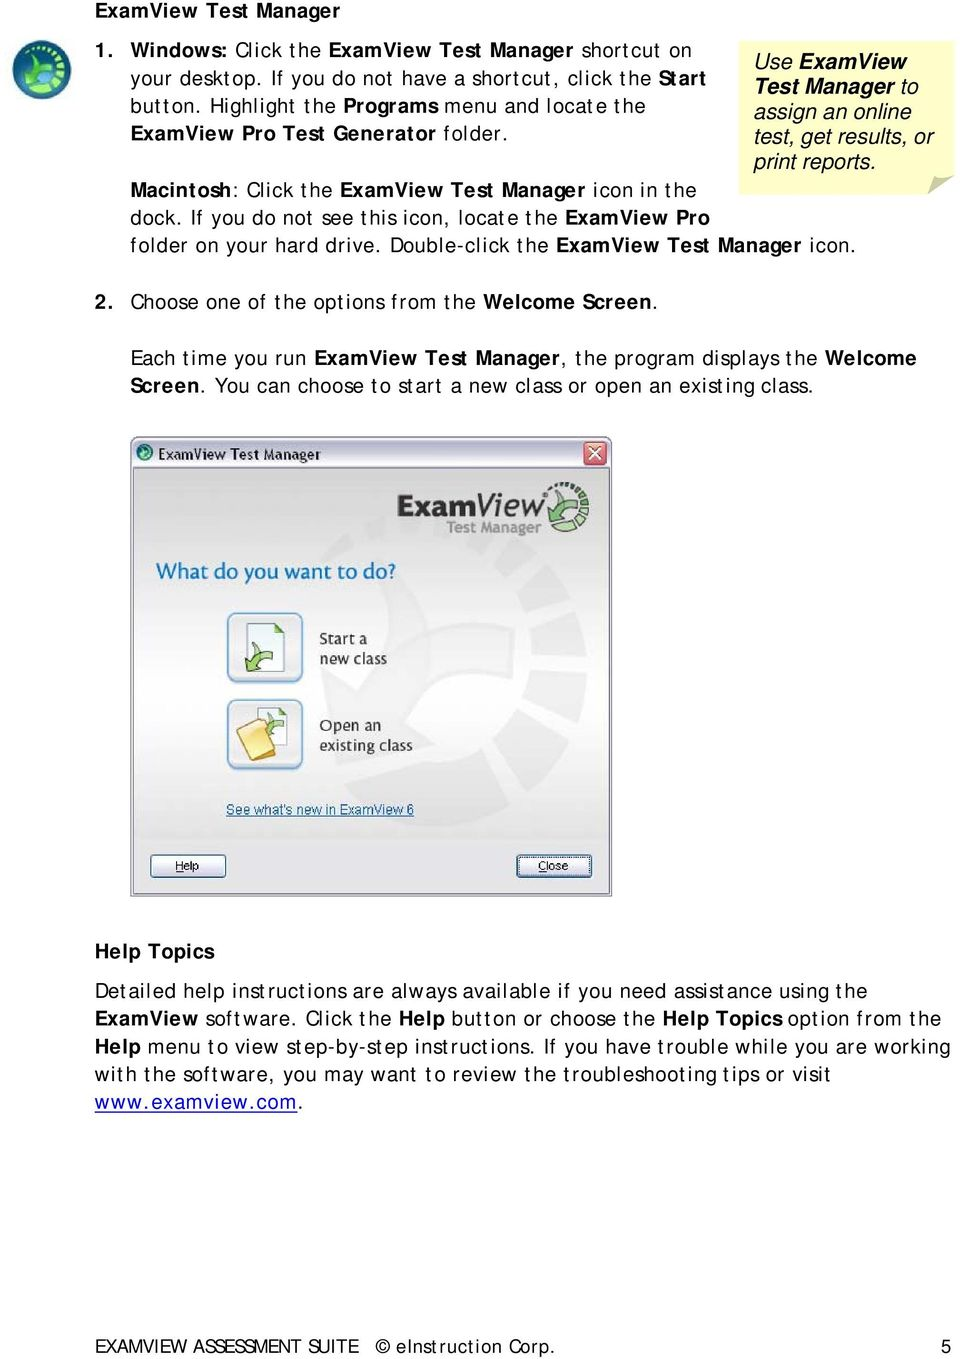 Macintosh: Click the ExamView Test Manager icon in the dock. If you do not